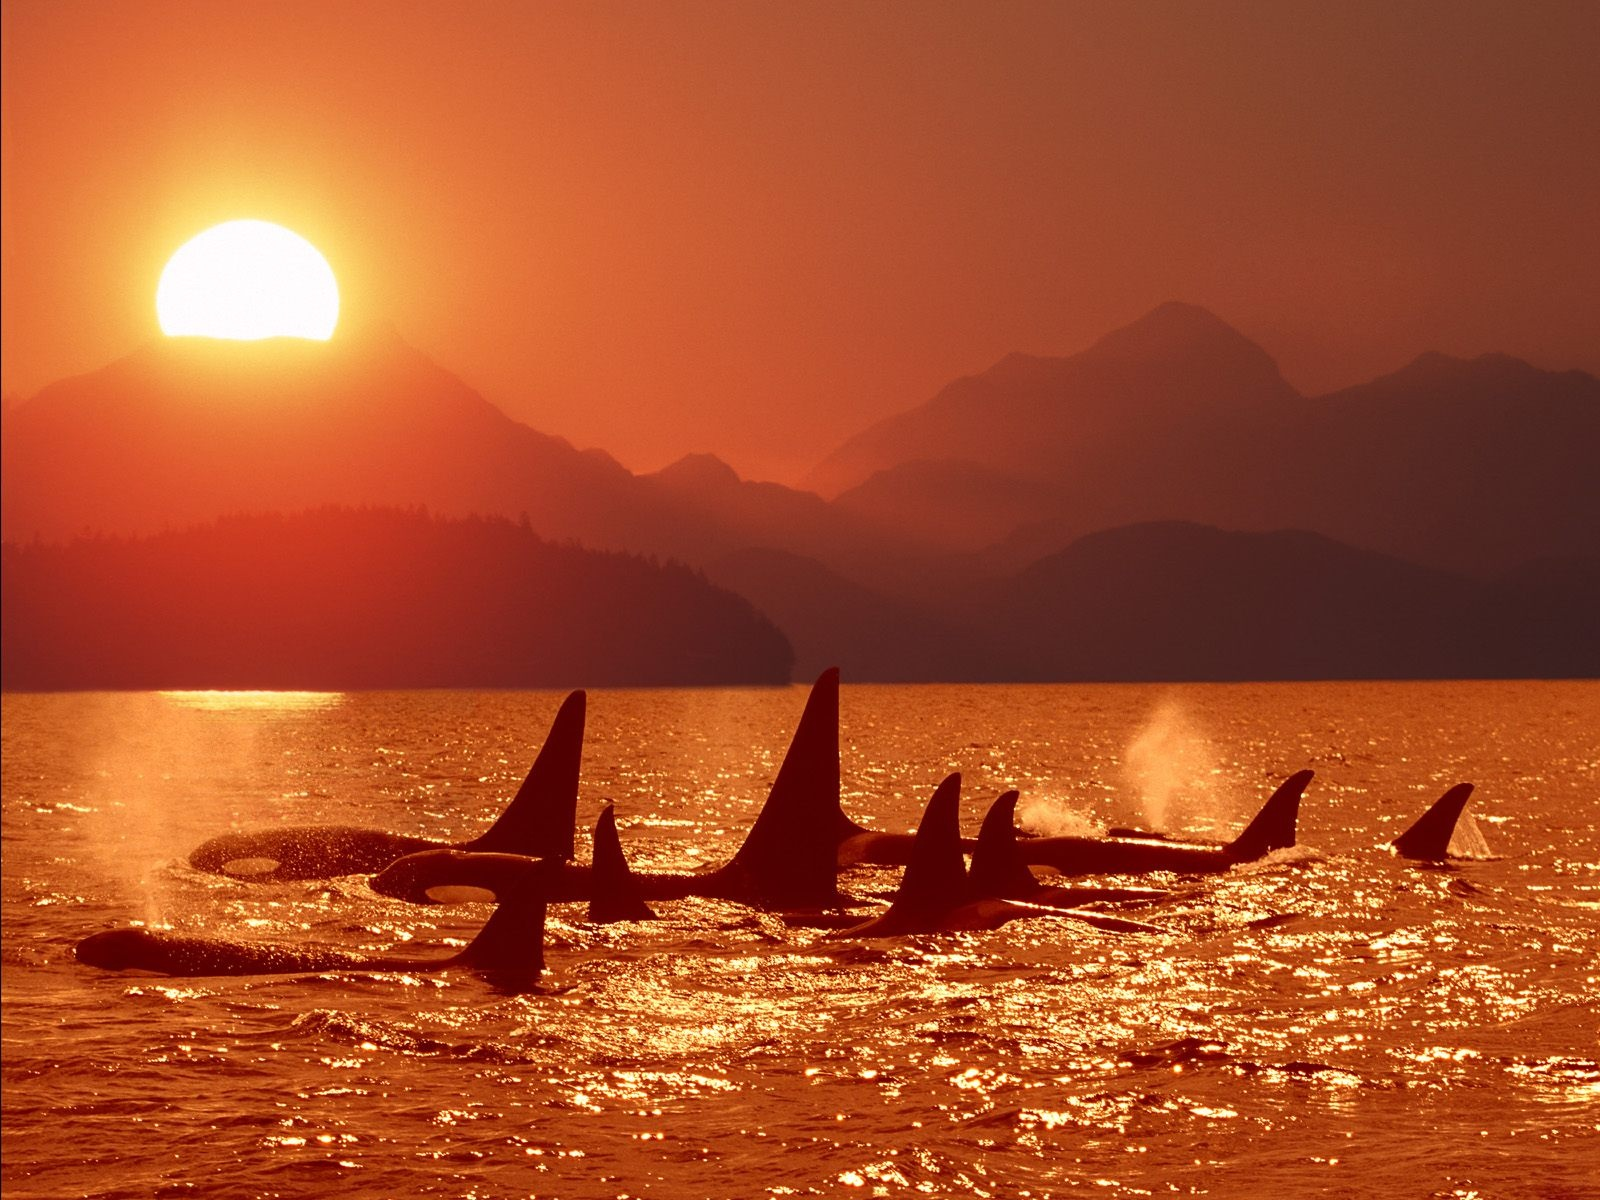 click to free download the wallpaper--Image of Nature Landscape, the Setting Sun, Sharks in Free Swim, High Mountains 1600X1200 free wallpaper download